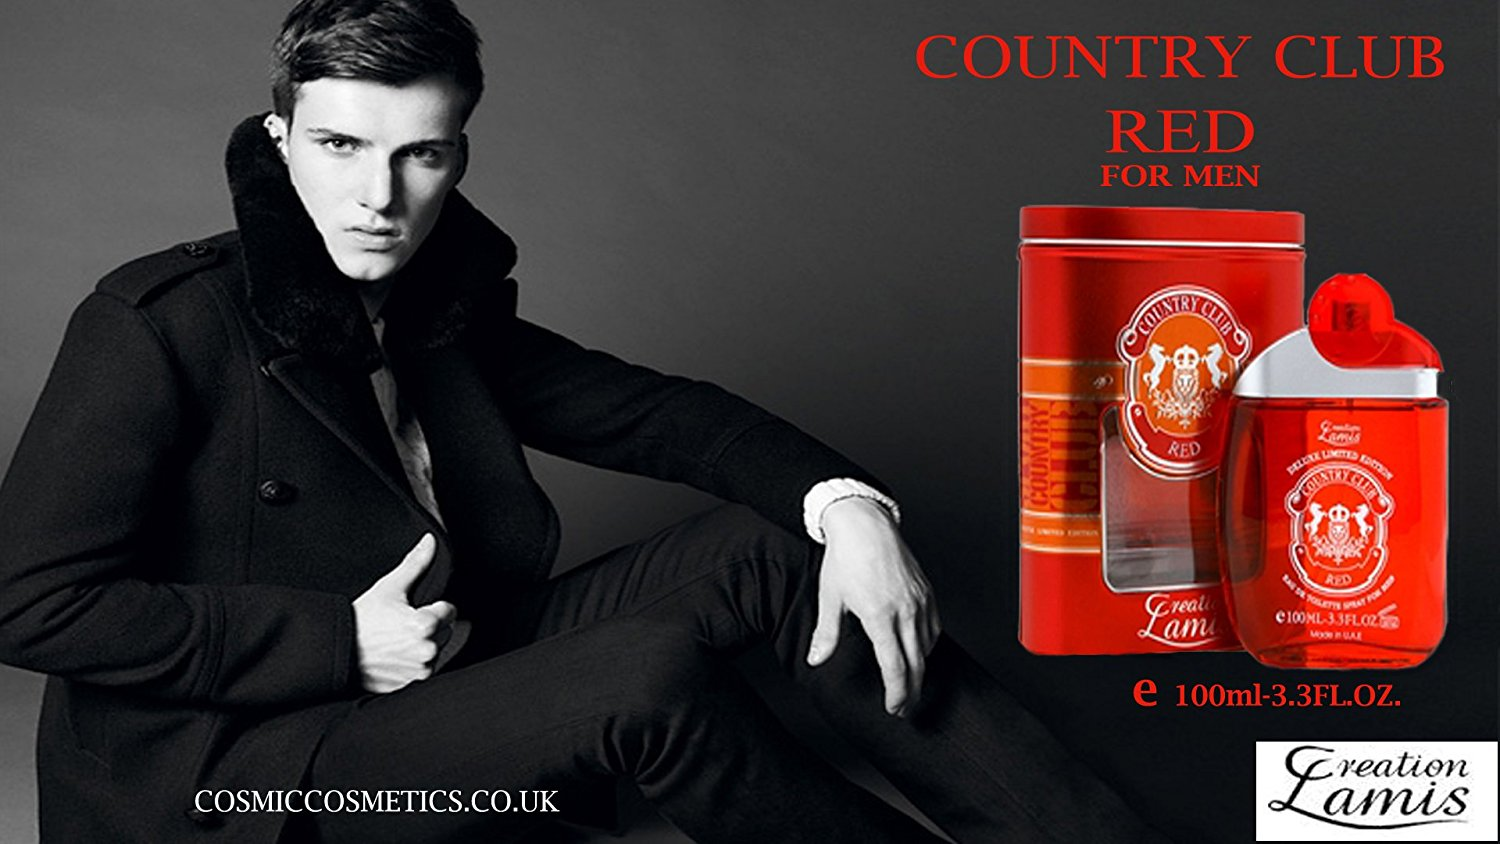 Country Club Red Deluxe 3.3oz. EDT Men Spray by Creation Lamis